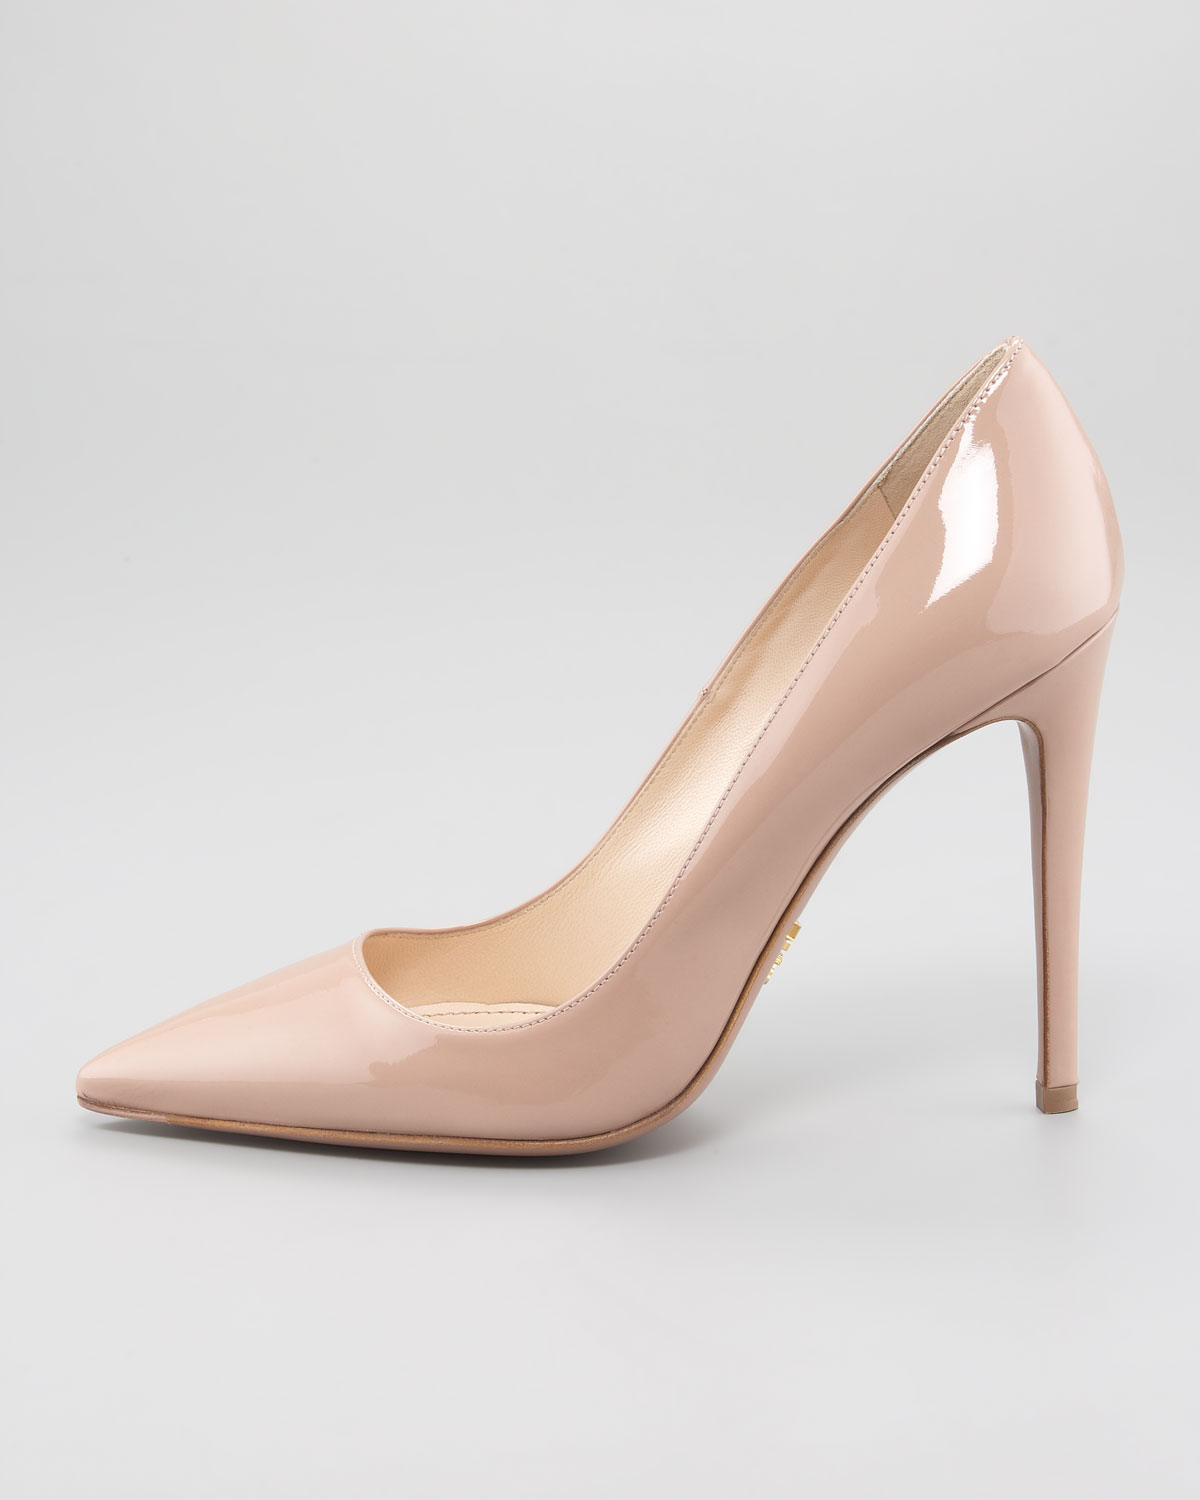 JIMMY CHOO Nude Bridget Leather Pumps. Shipping: Shipping fees are calculated based upon the subtotal of the merchandise ordered.